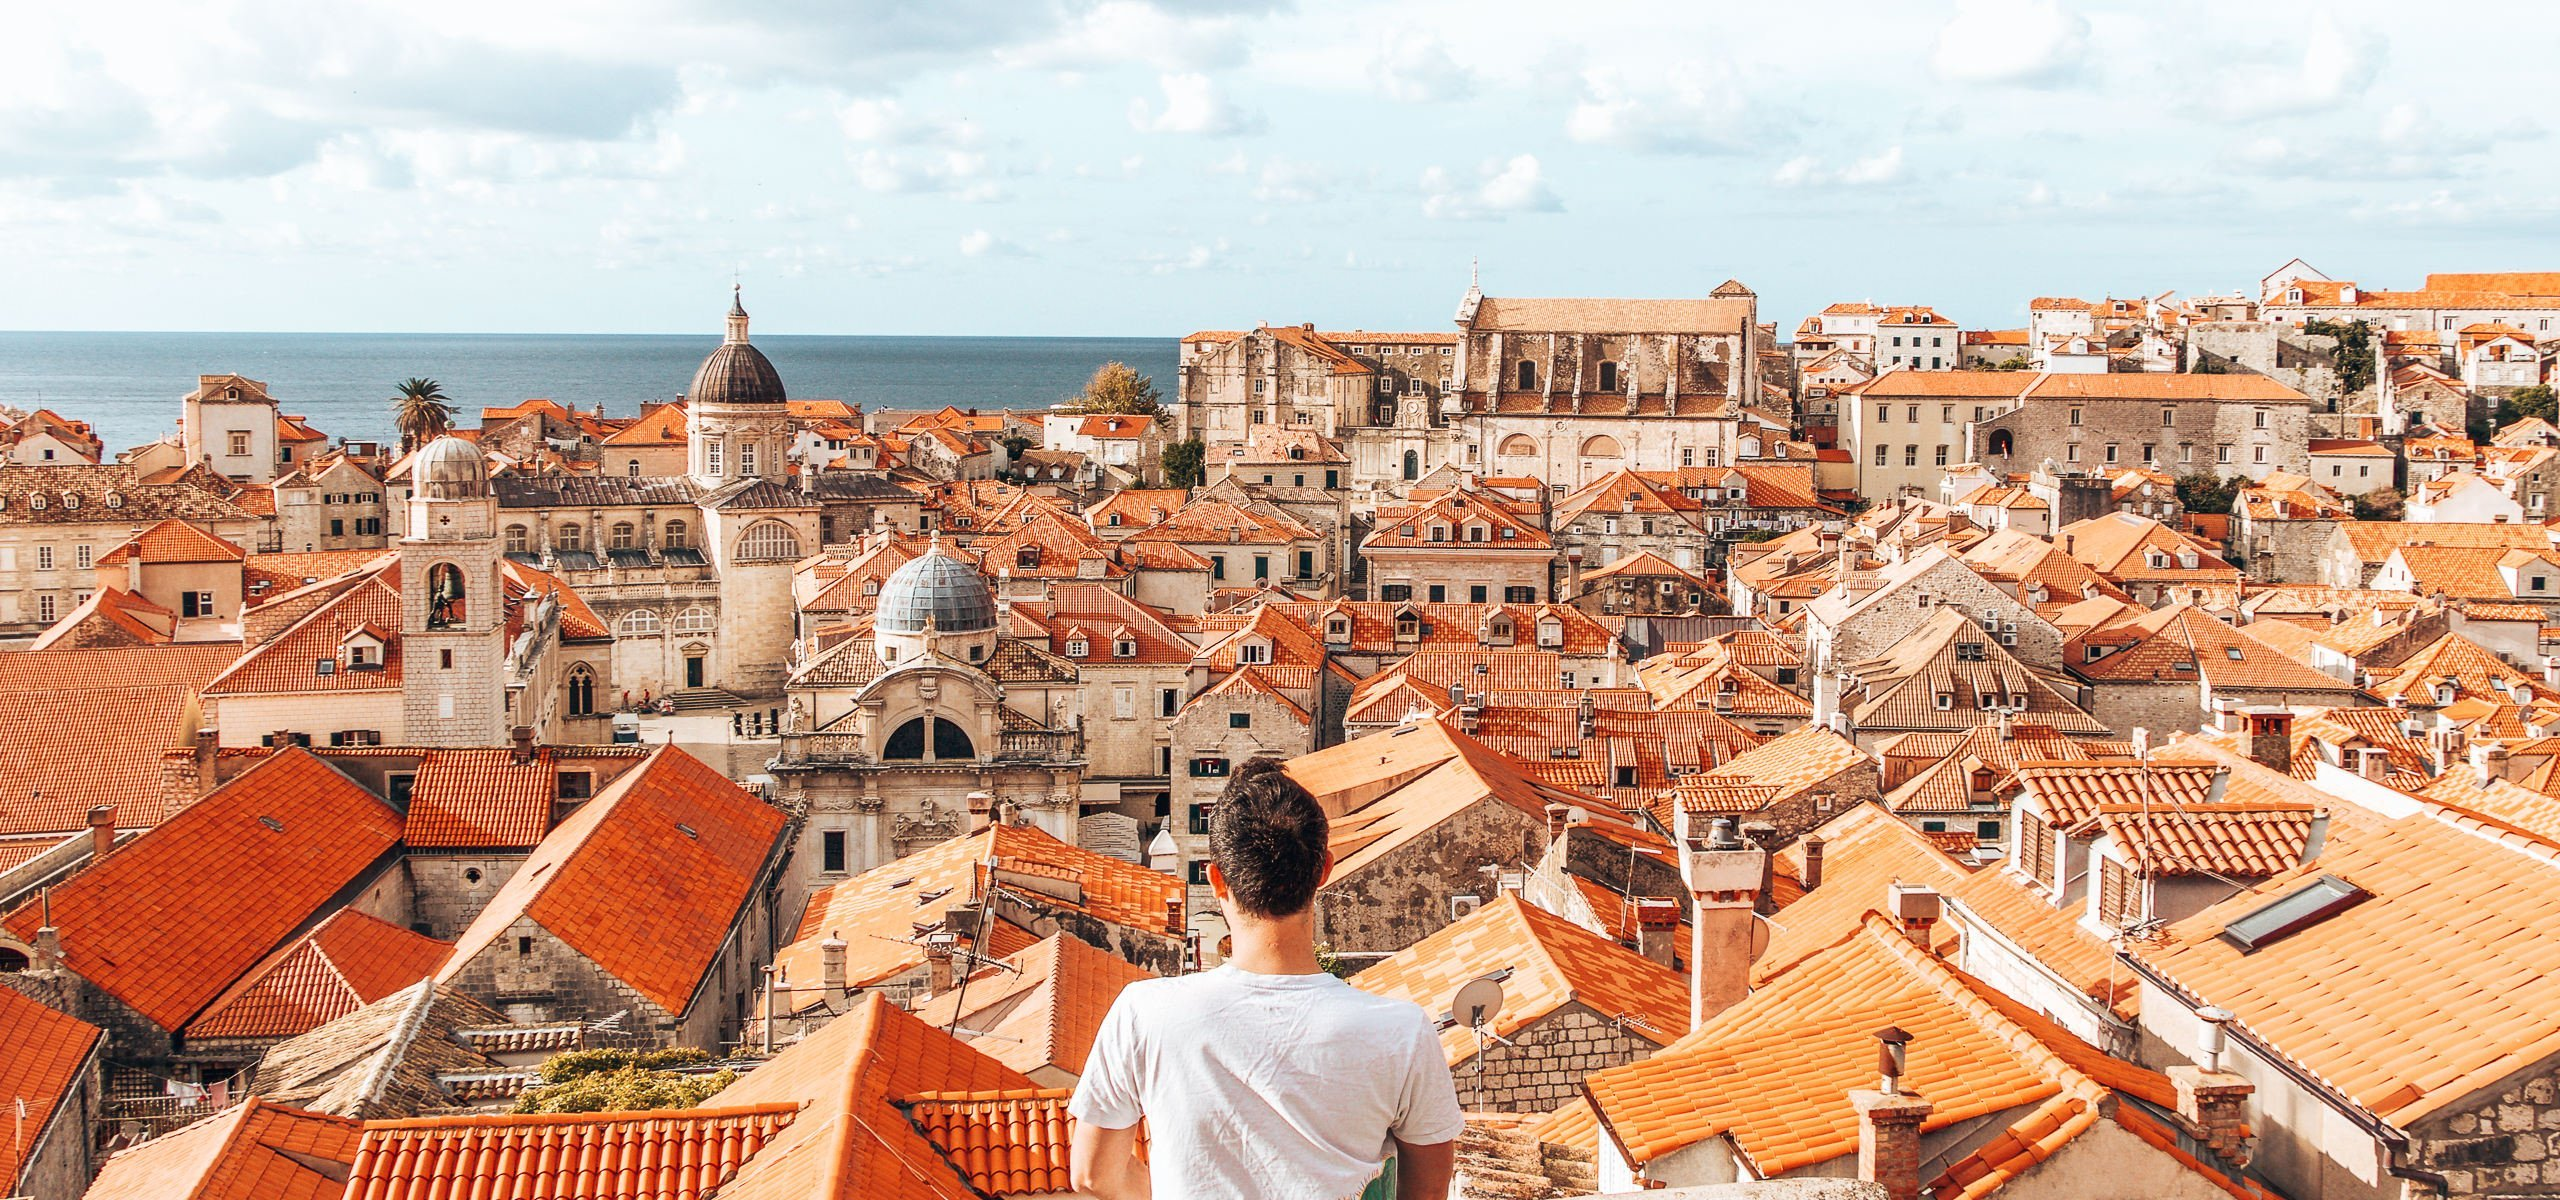 How To Spend 48 Hours In Dubrovnik